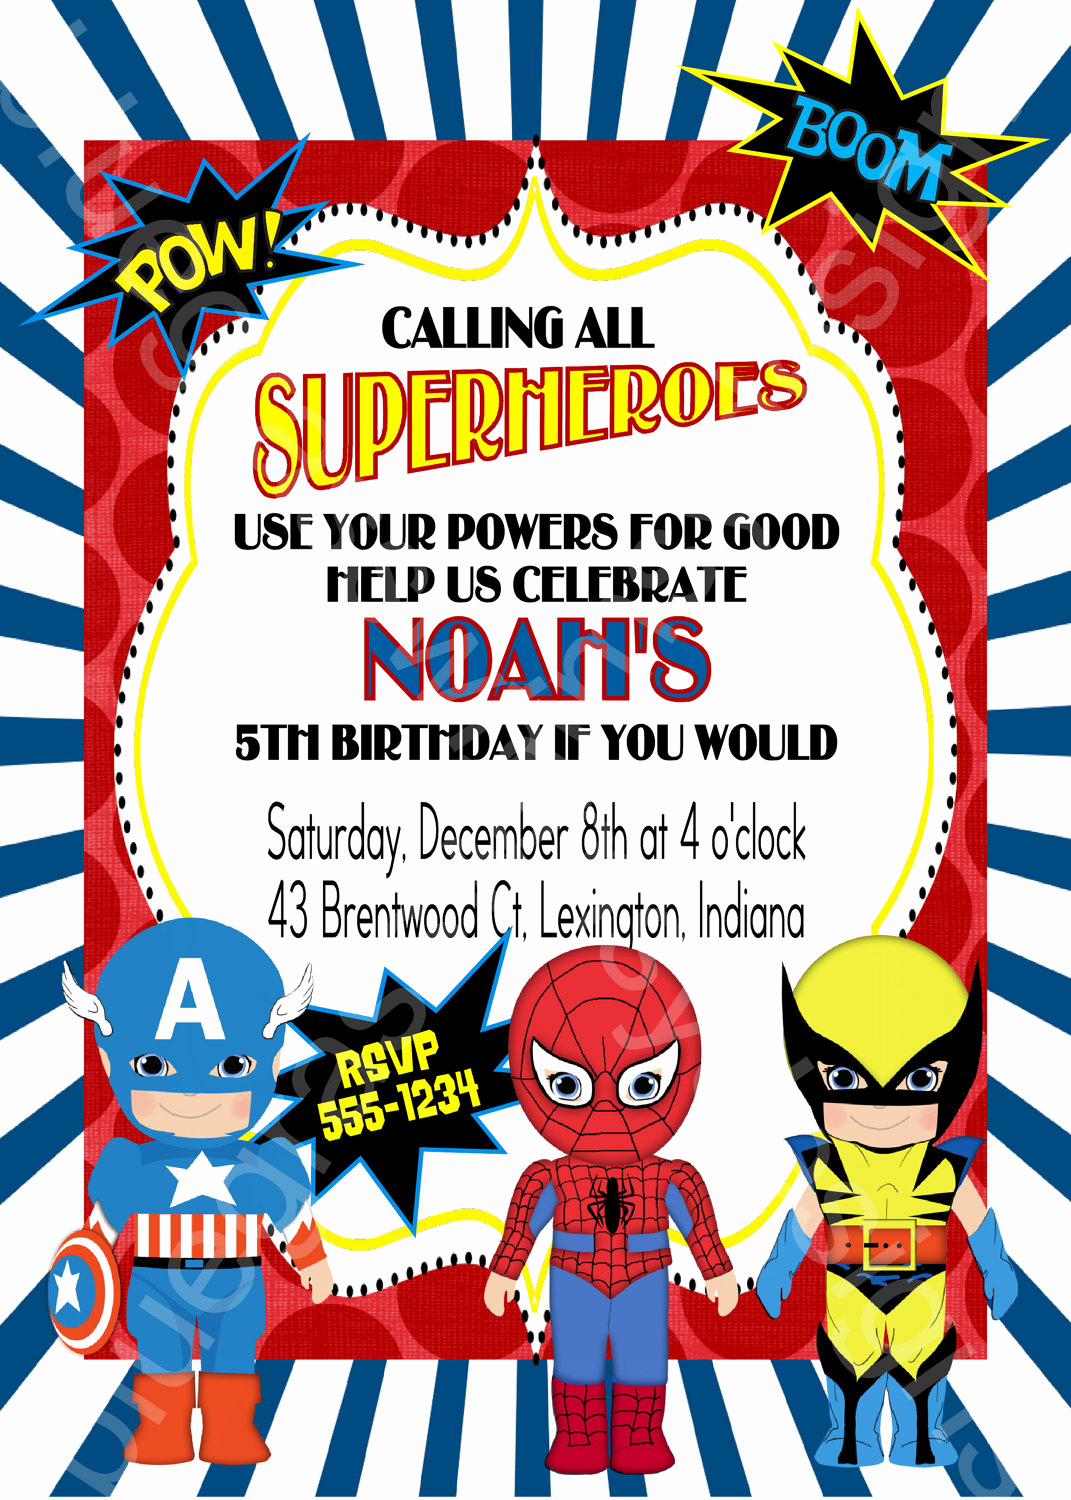 Free Superhero Invitation Templates Luxury Calling All Superheroes Birthday Party Invitation Boy or